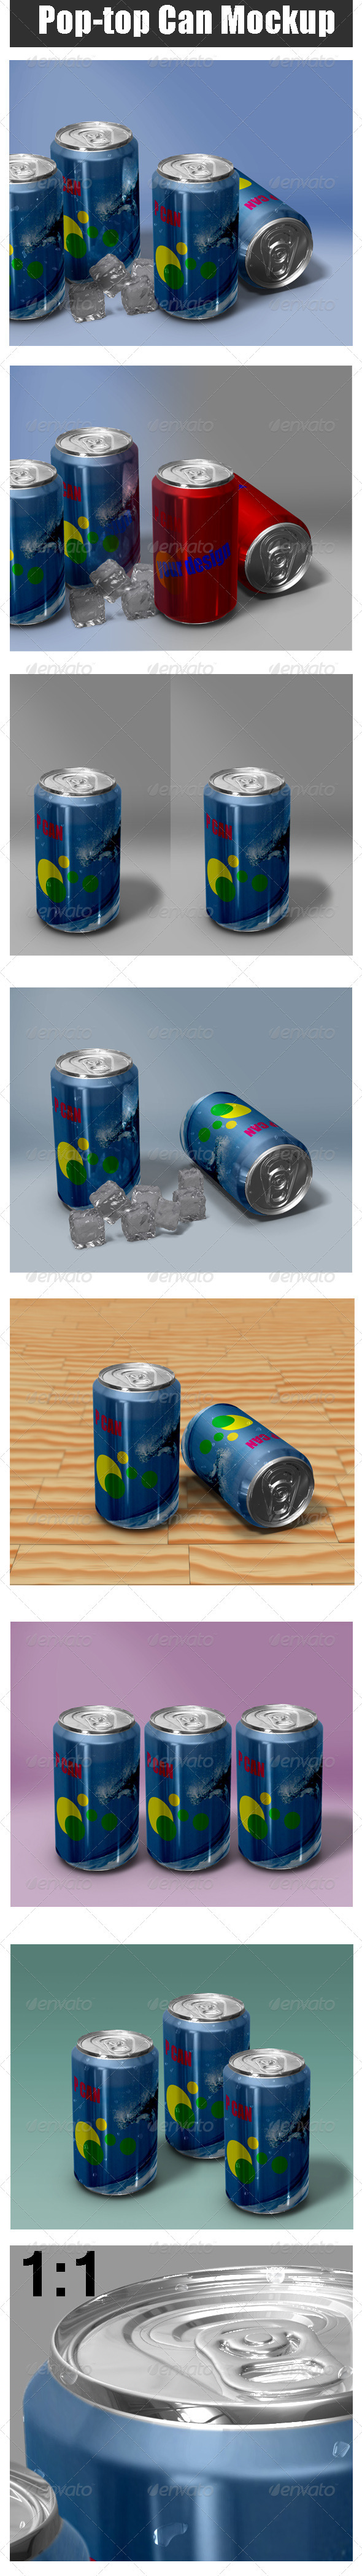 Pop-Top Can Mock-up - Food and Drink Packaging